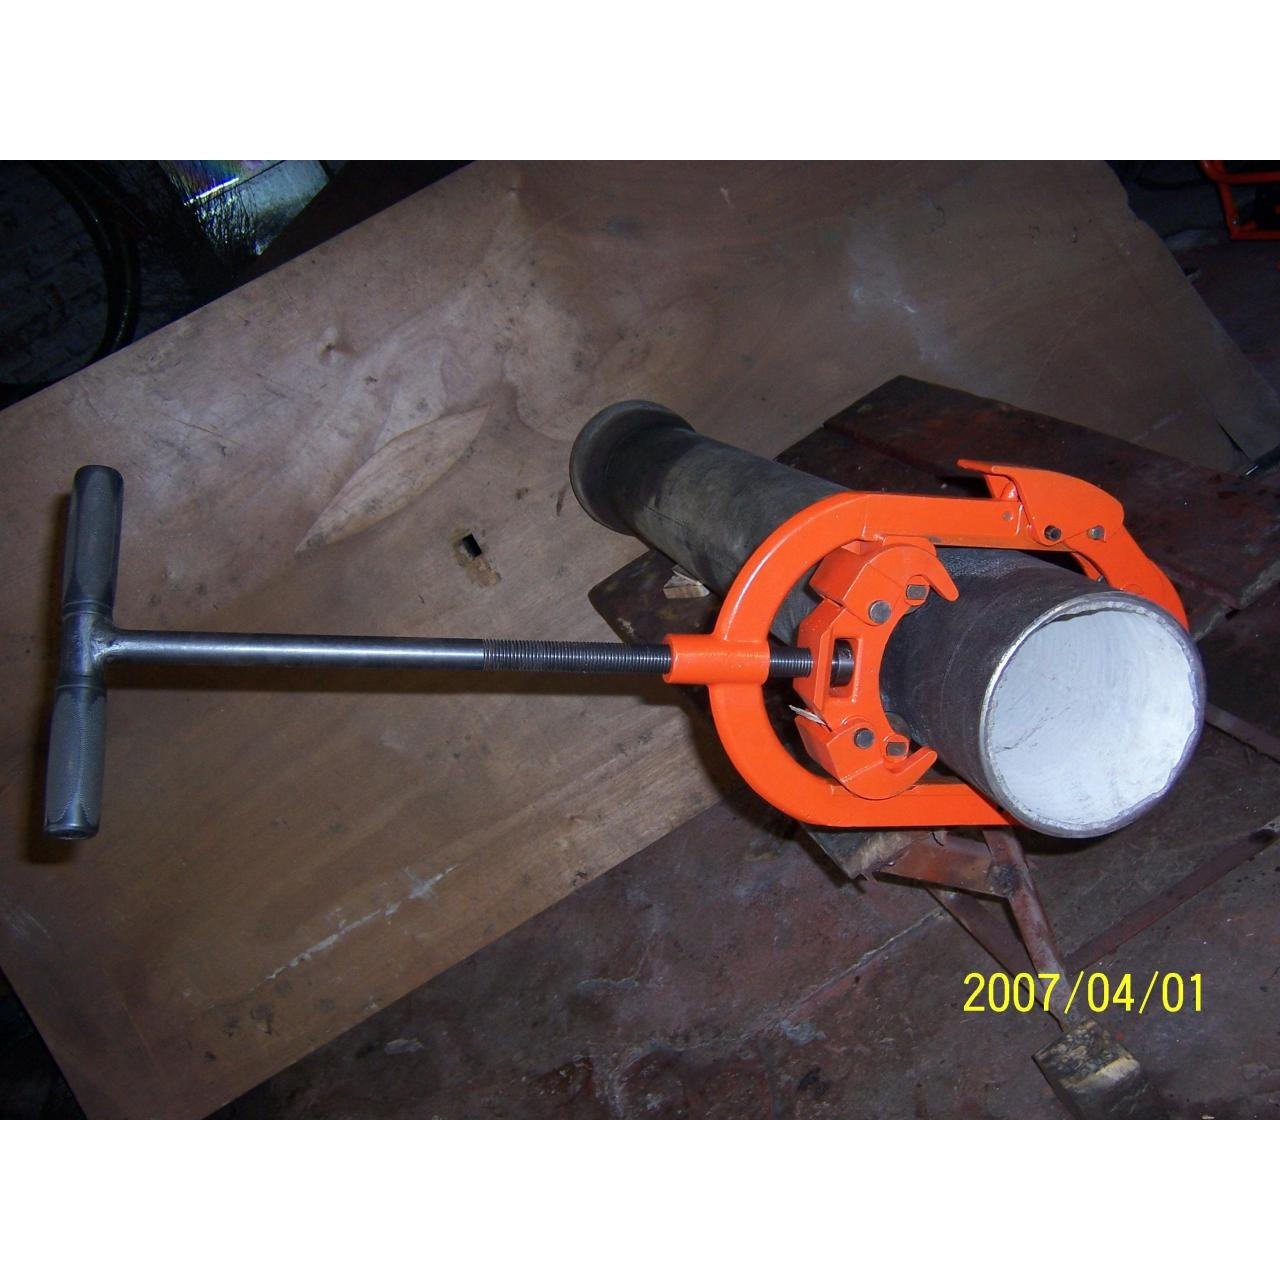 Articulated pipe cutter. Manufactures